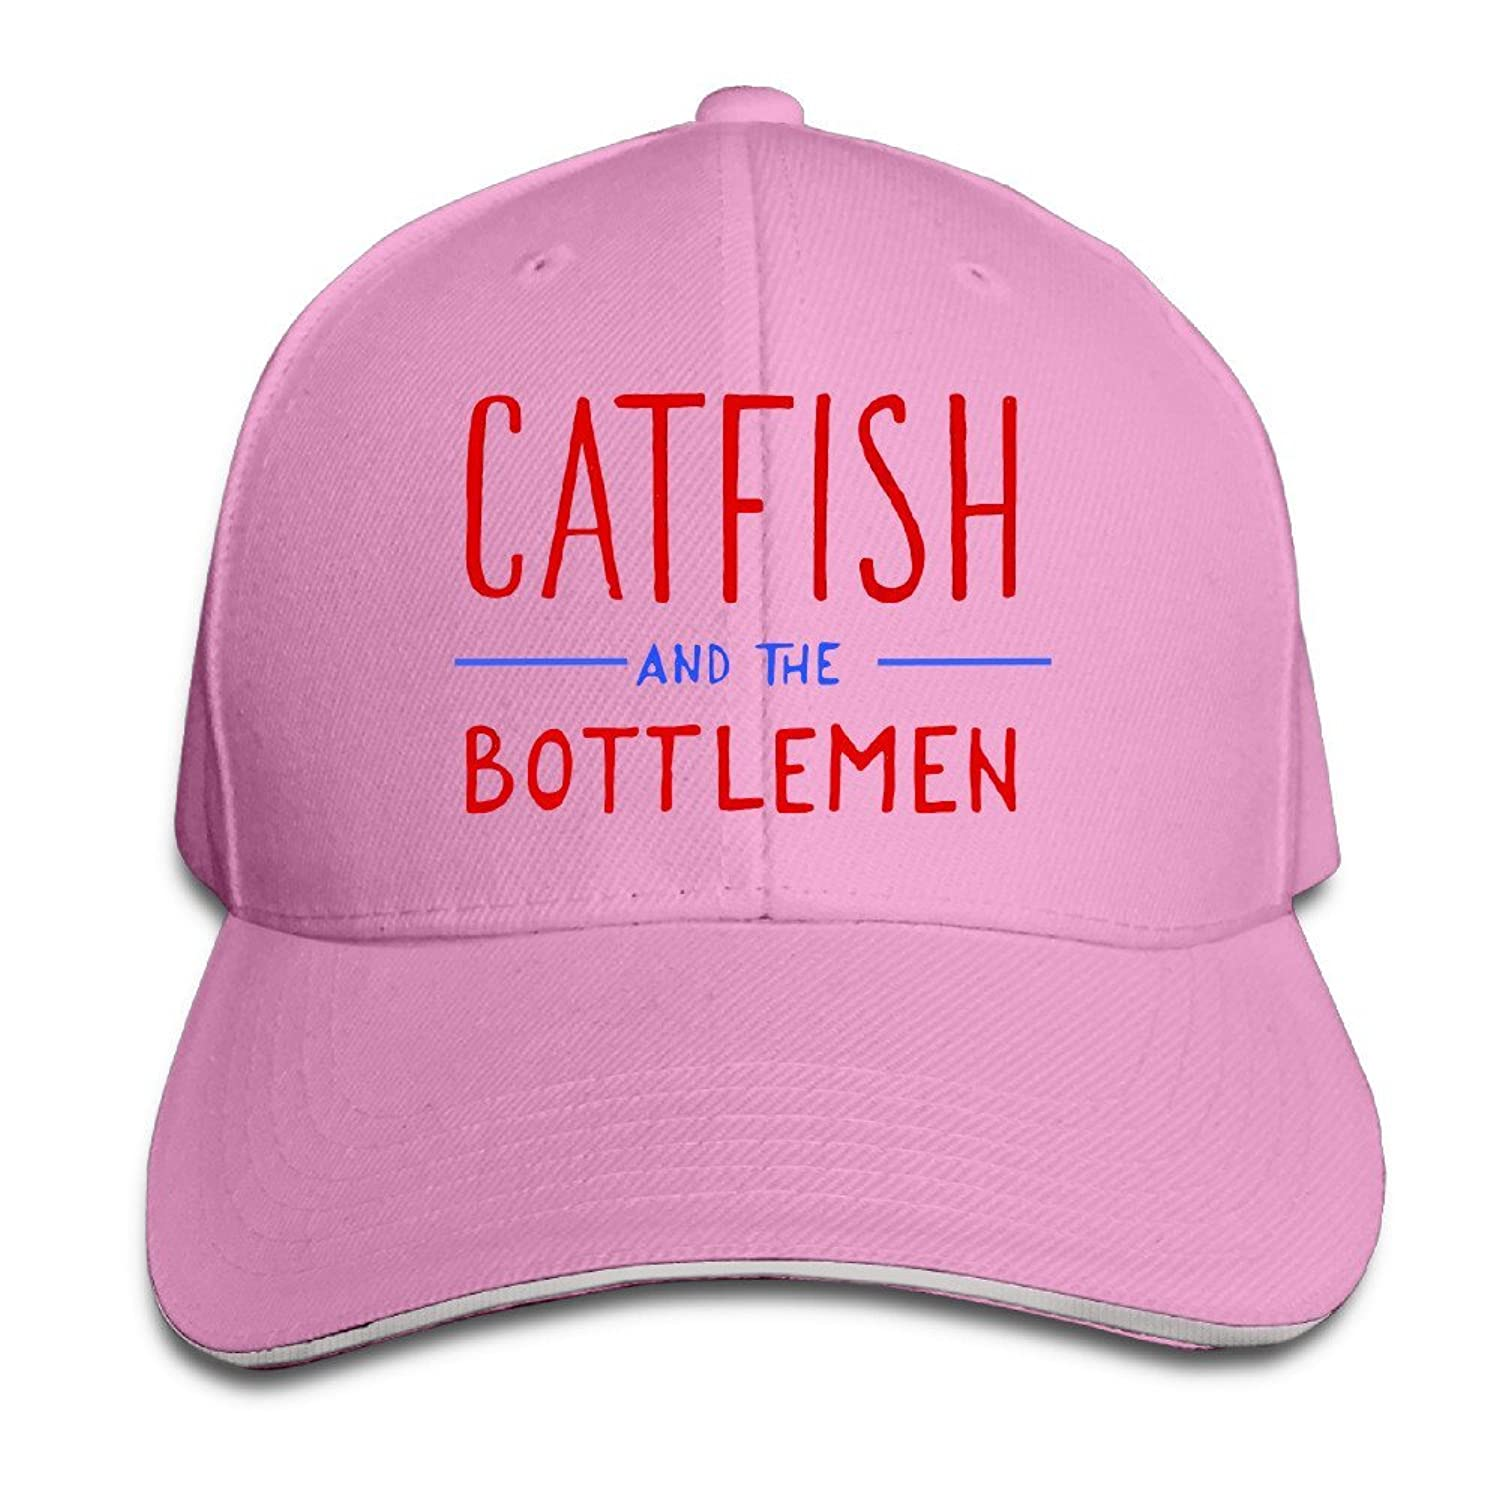 Catfish And The Bottlemen Logo Unisex 100% Cotton Adjustable Baseball Caps Natural One Size